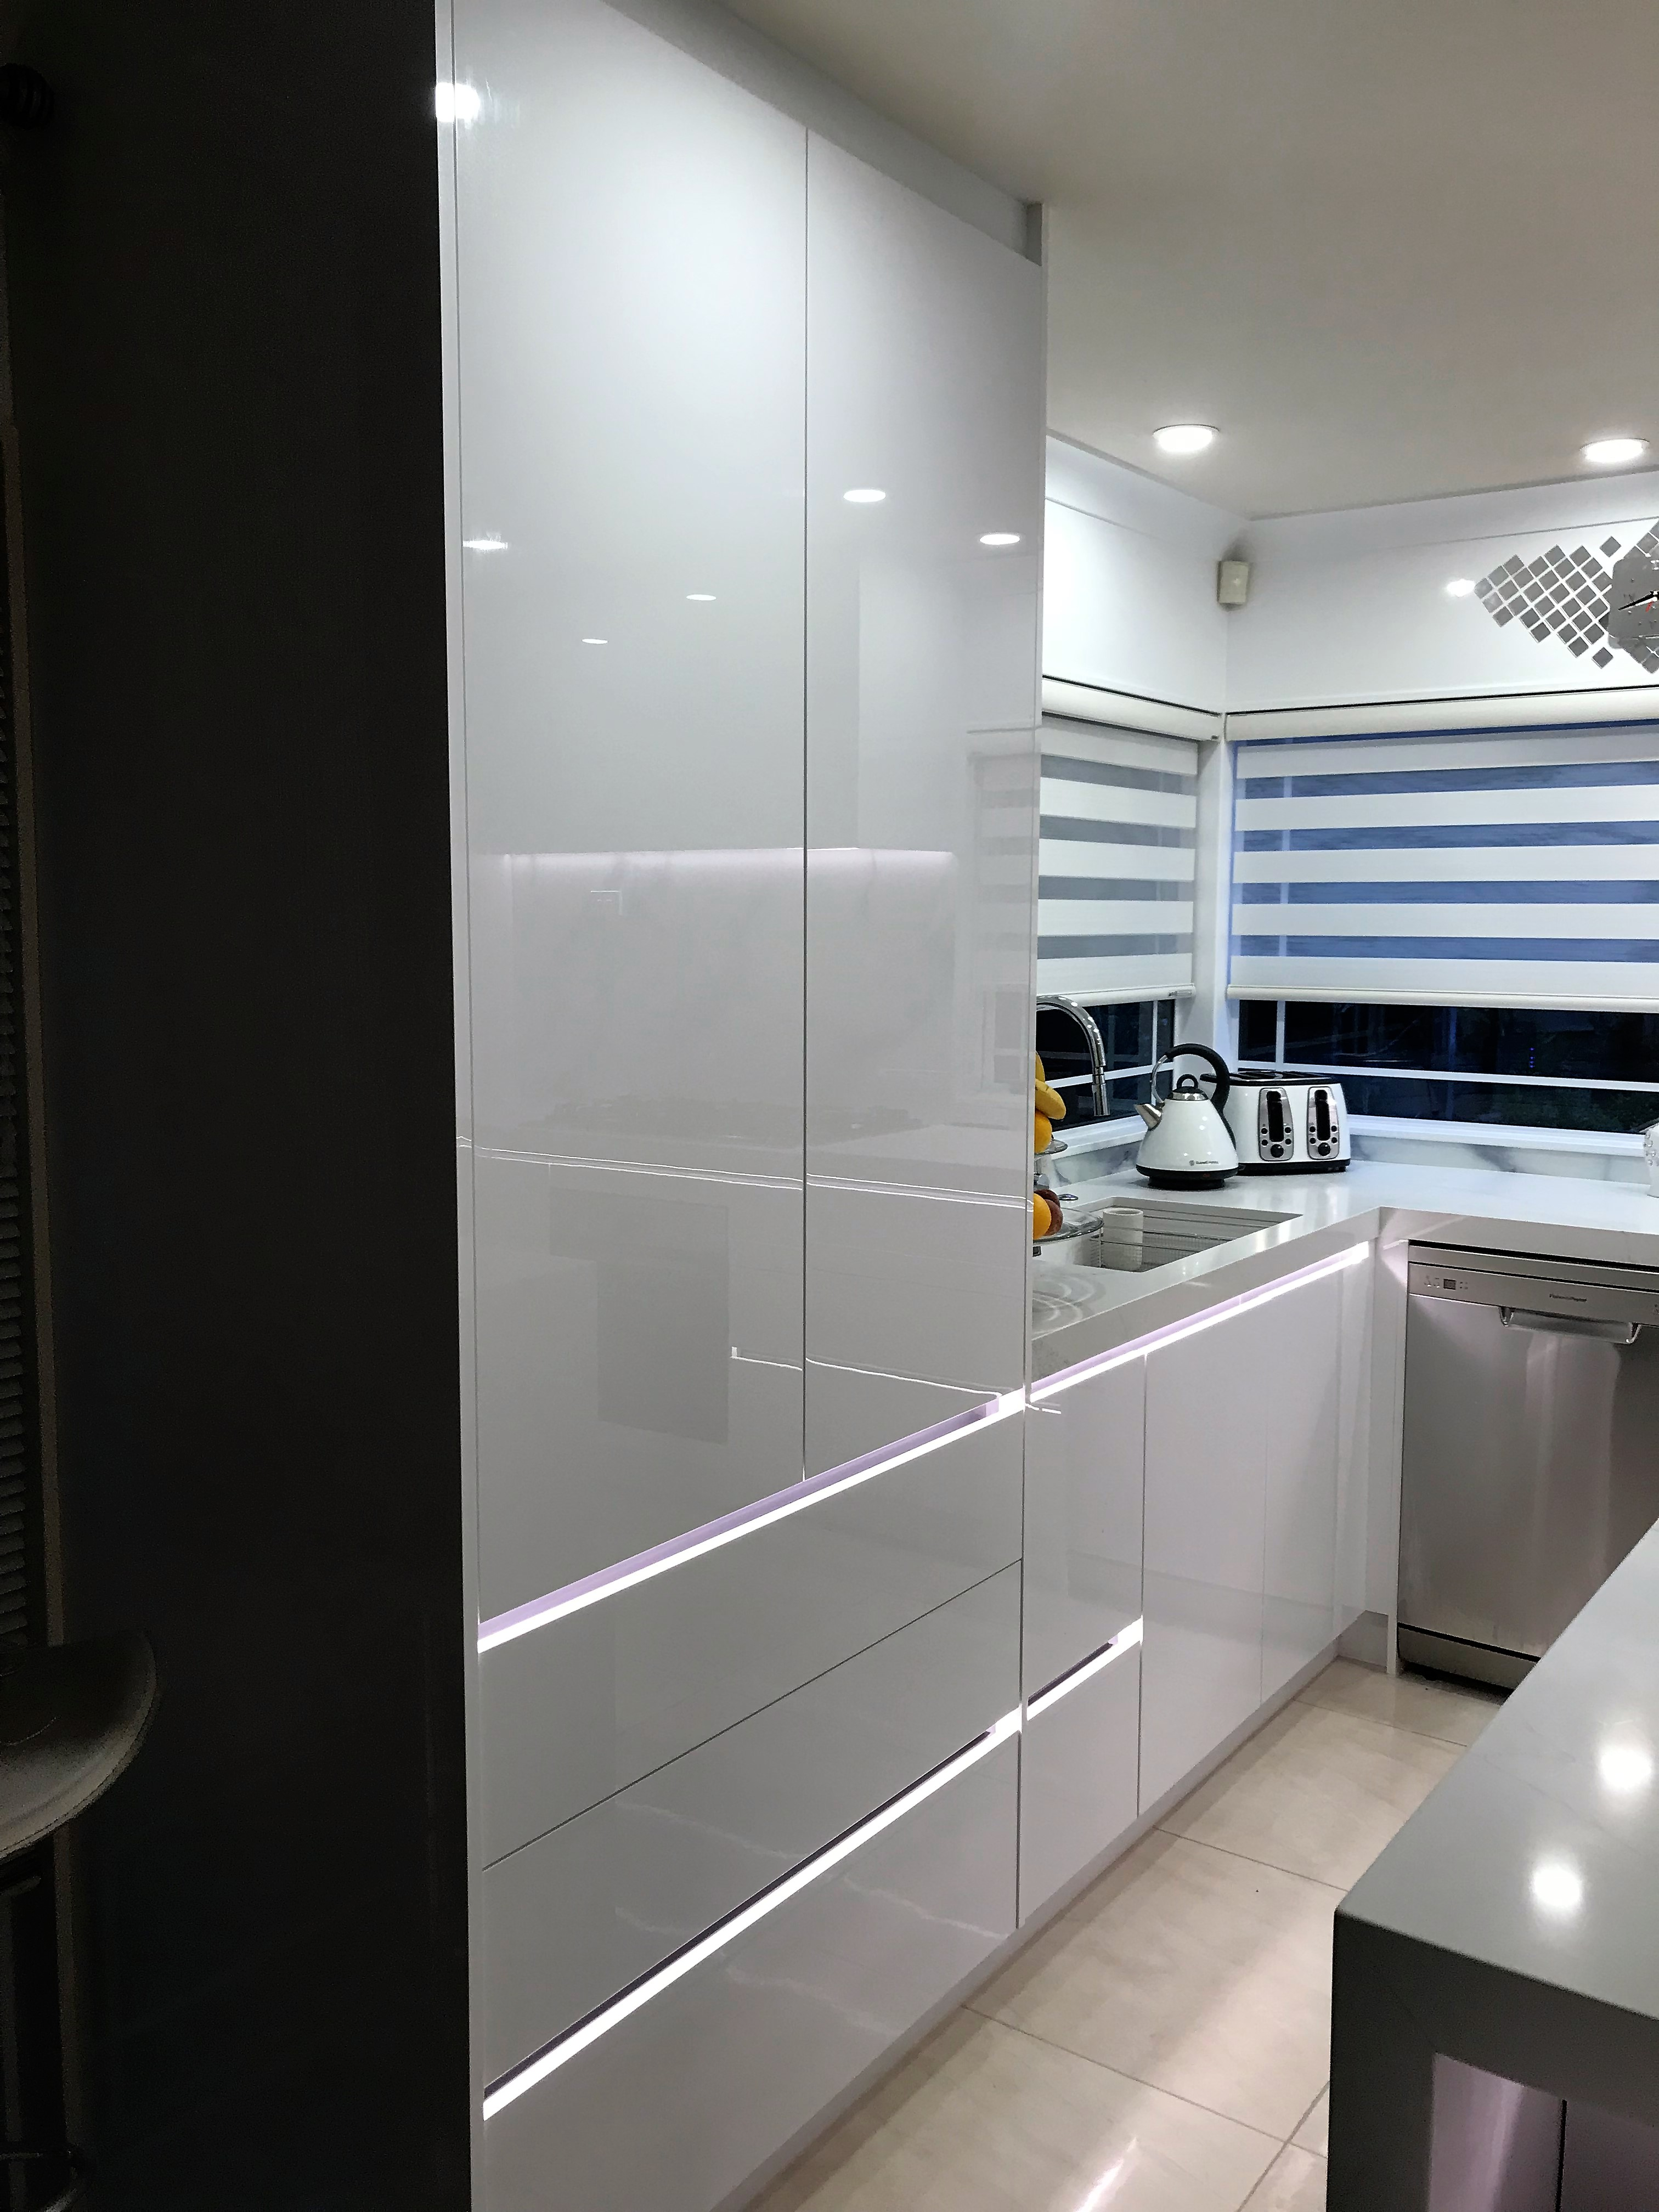 GJ-Kitchens-dannemoraskitchen-3-20181211023503560